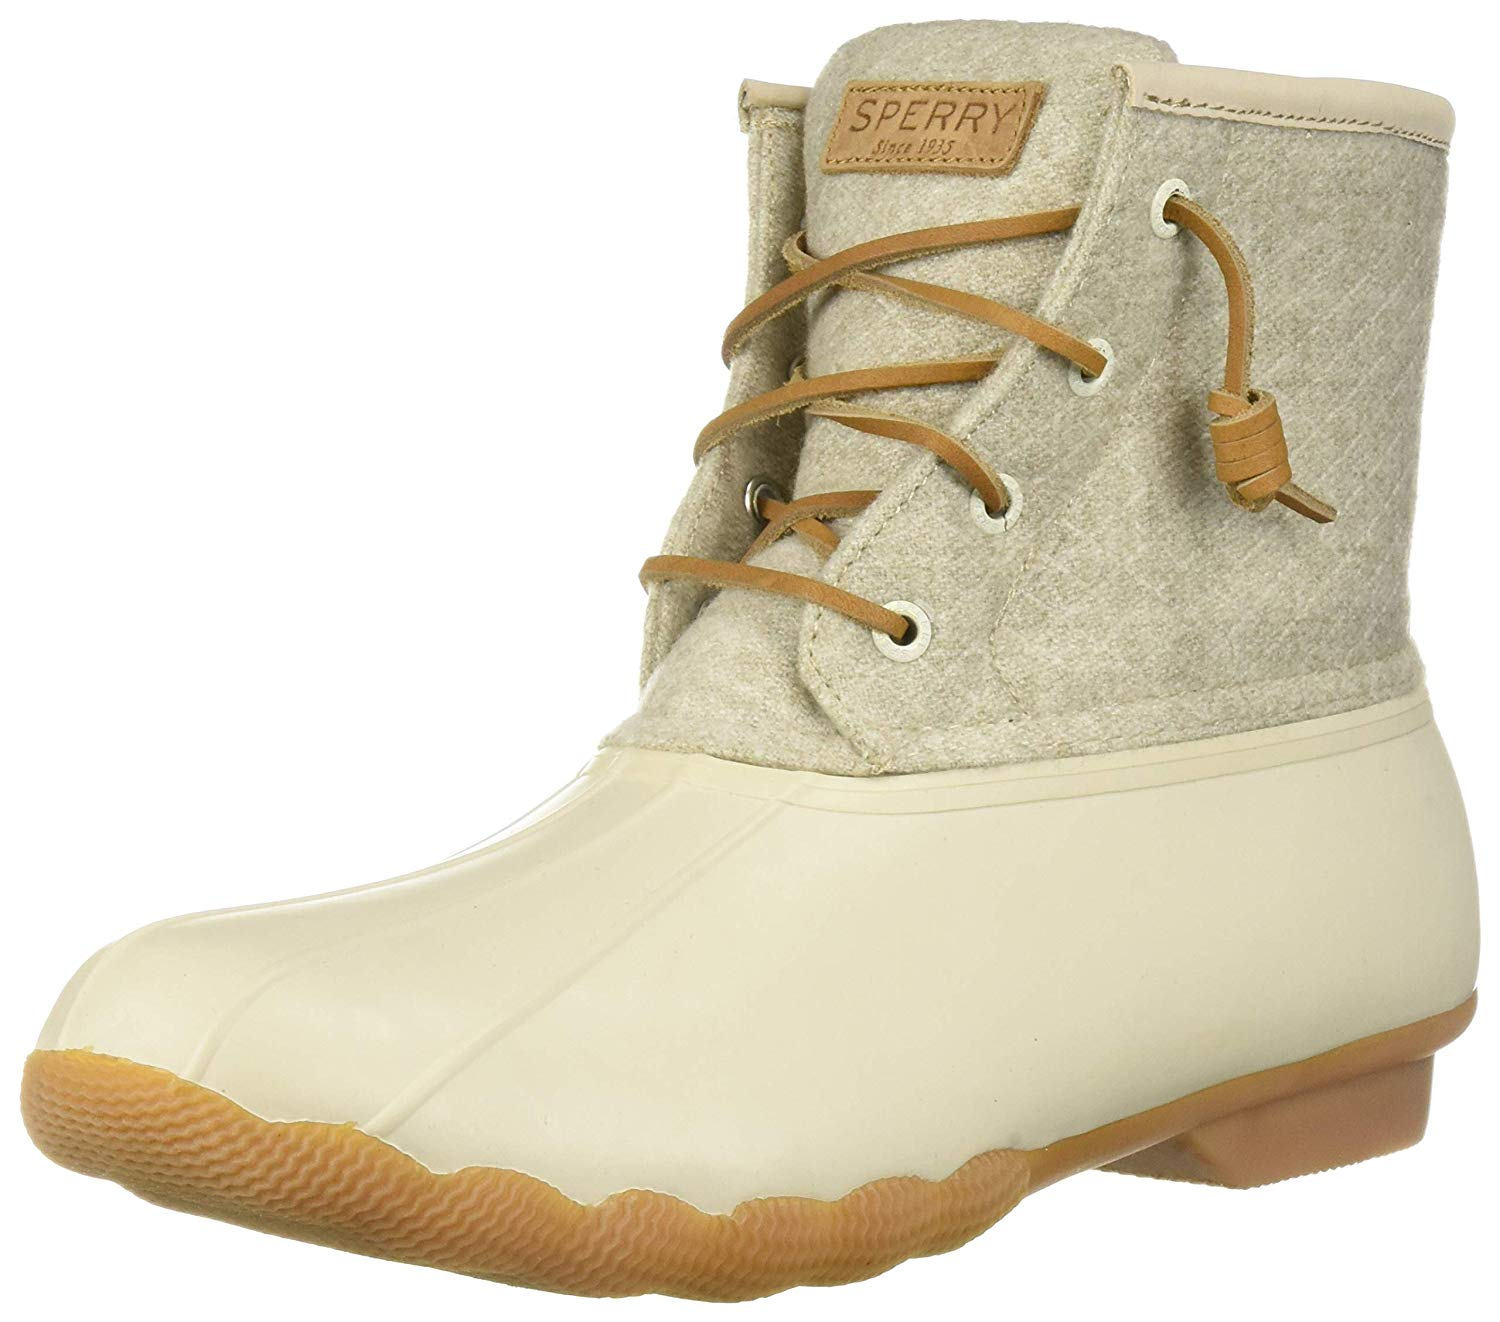 7b2798290 PairMySole: Sperry Womens Saltwater Duck Booties Fabric Closed Toe ...